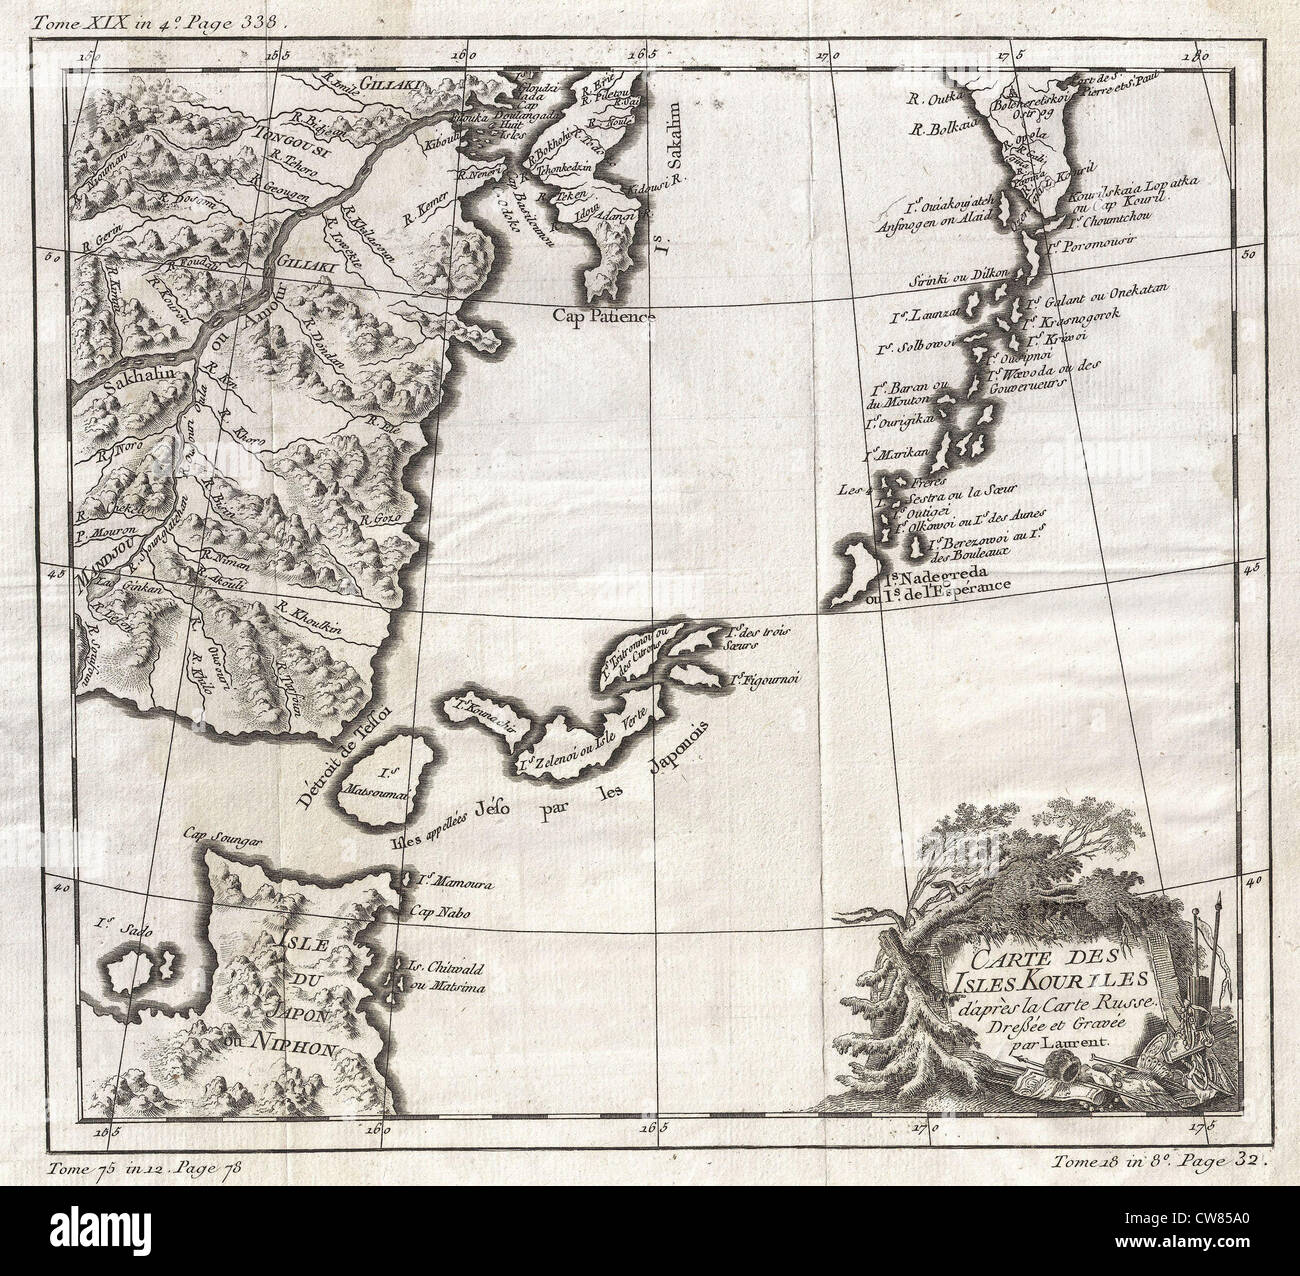 1750 Bellin Map of the Kuril Islands - Stock Image